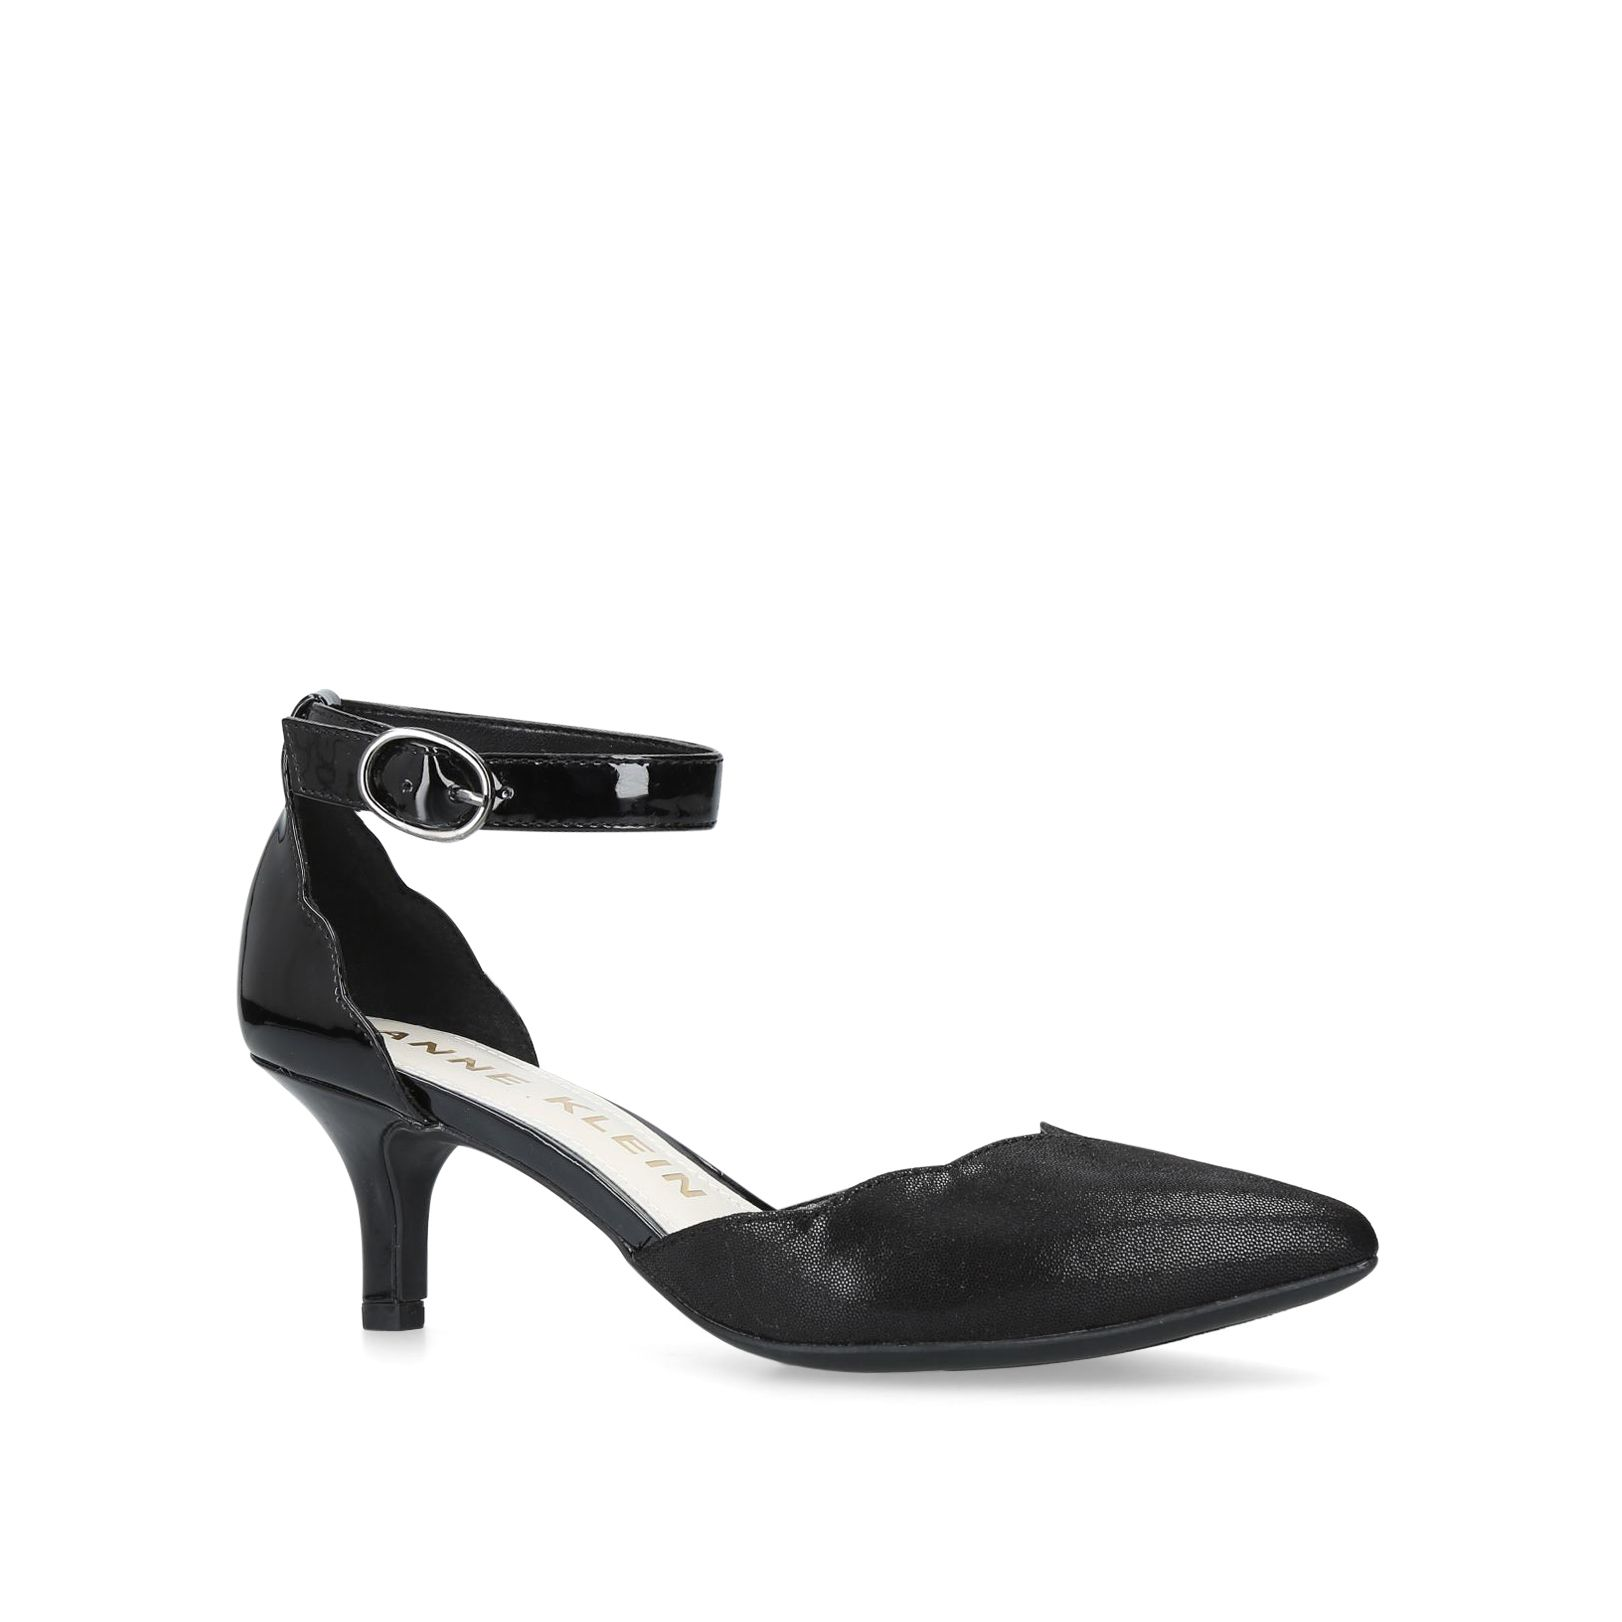 Anne Klein Fonda Courts, Black